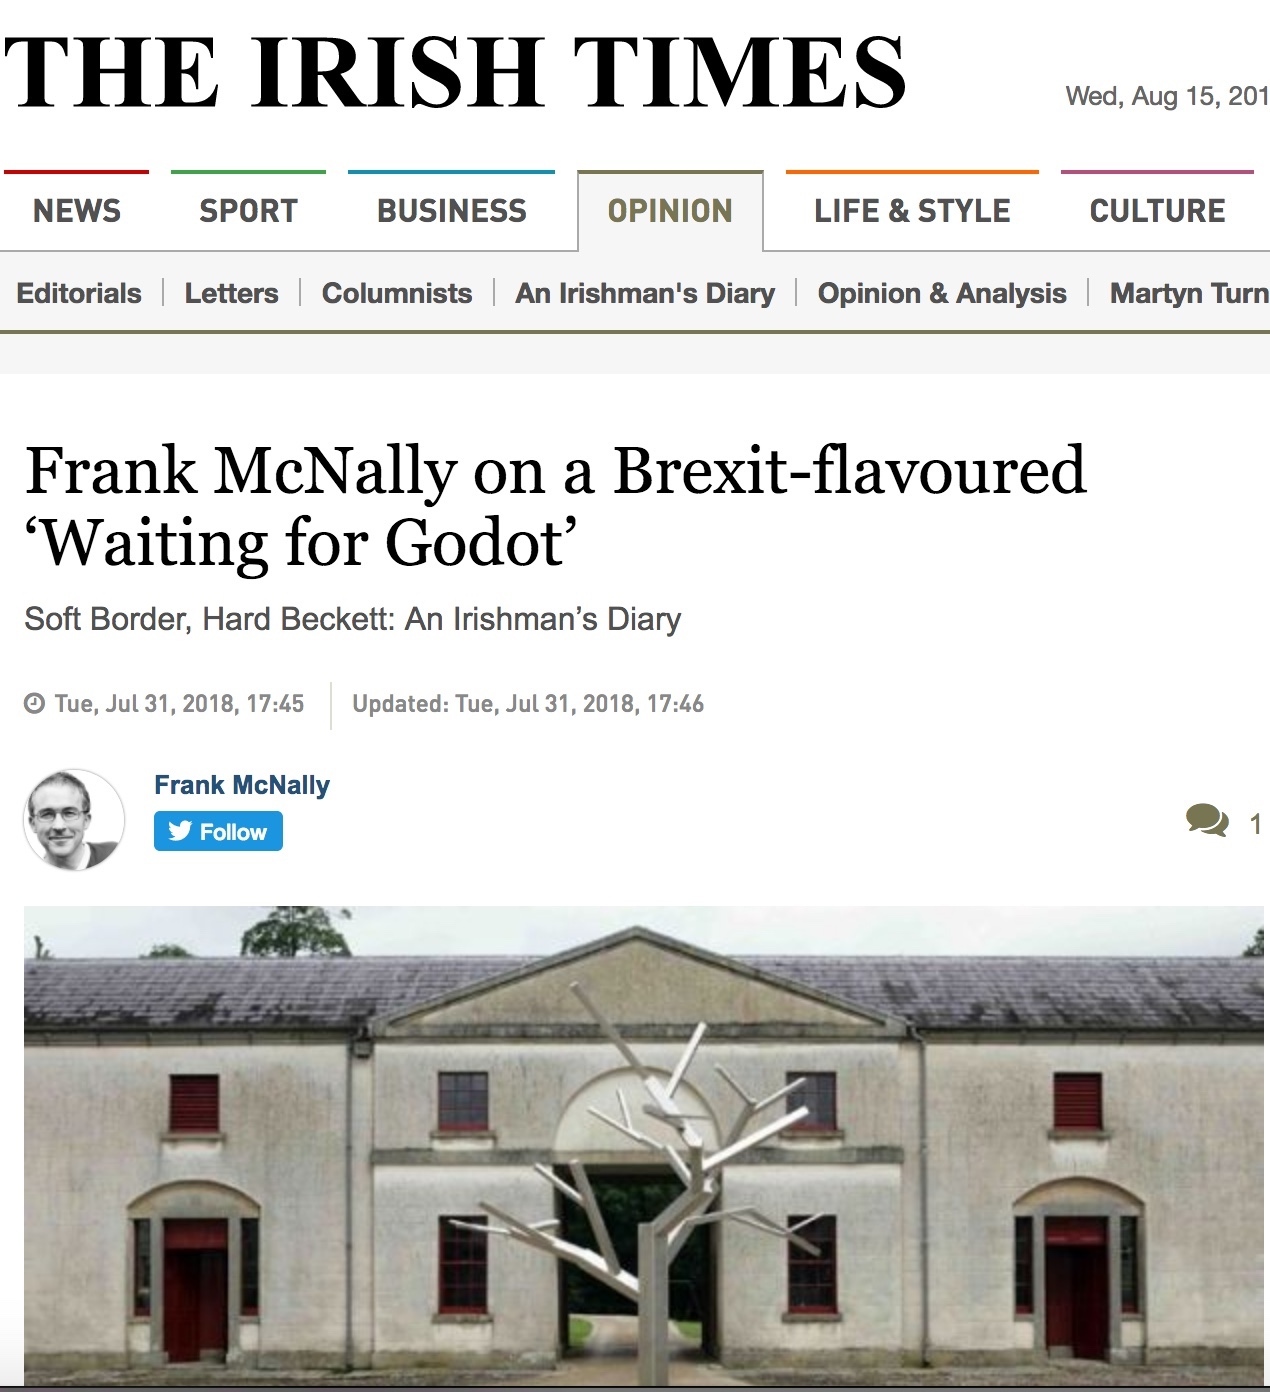 Soft Border, Hard Beckett: An Irishman's Diary : Irish Times